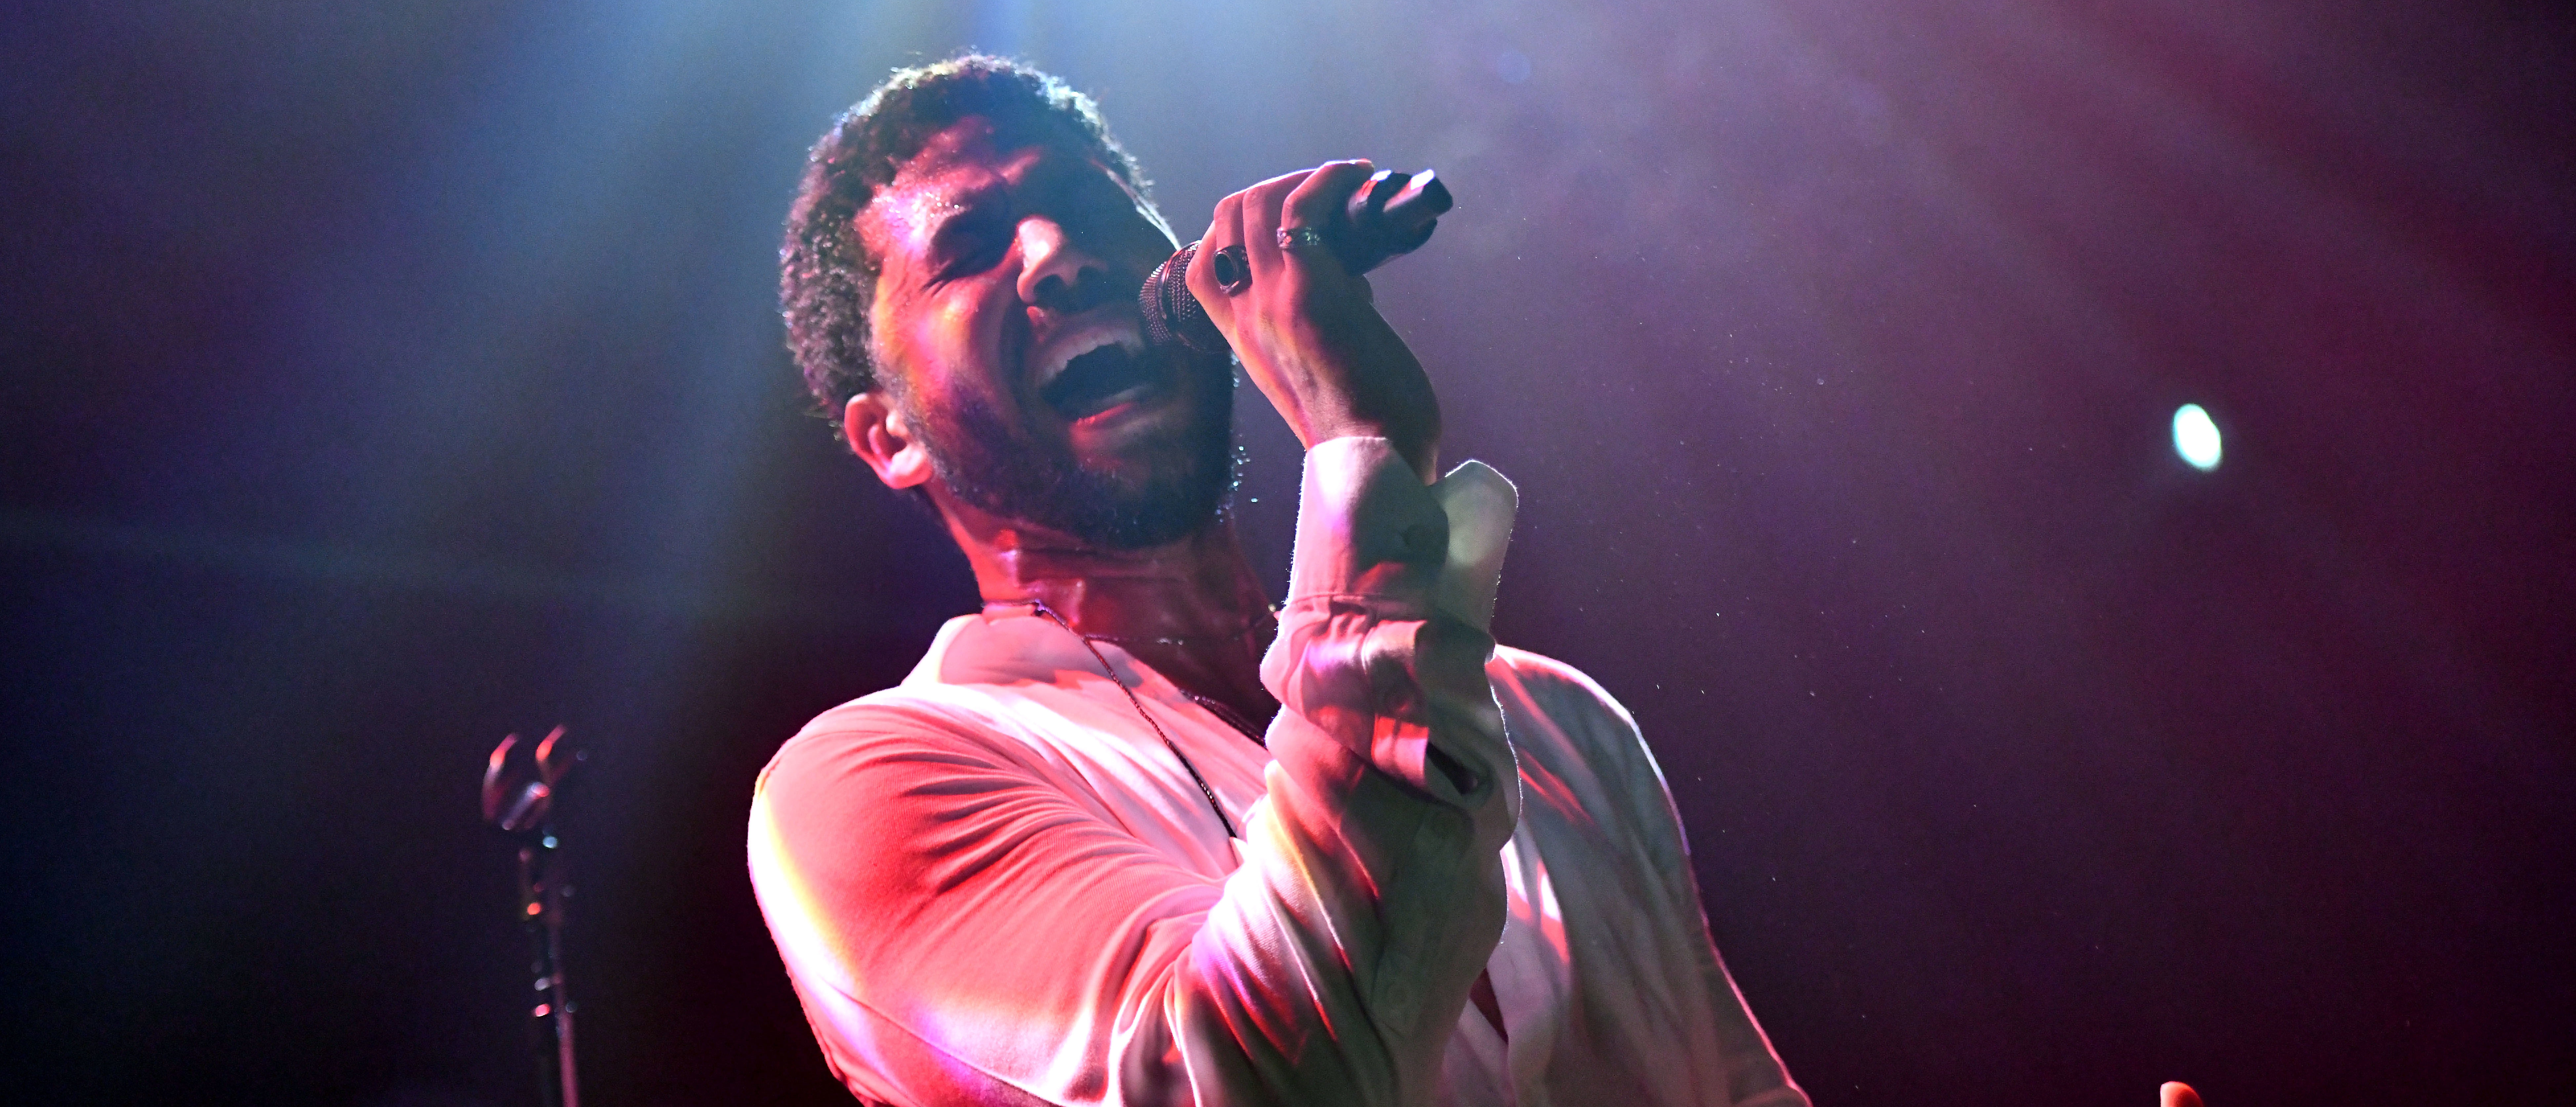 WEST HOLLYWOOD, CALIFORNIA - FEBRUARY 02: Singer Jussie Smollett performs onstage at Troubadour on February 02, 2019 in West Hollywood, California. (Scott Dudelson/Getty Images for ABA)